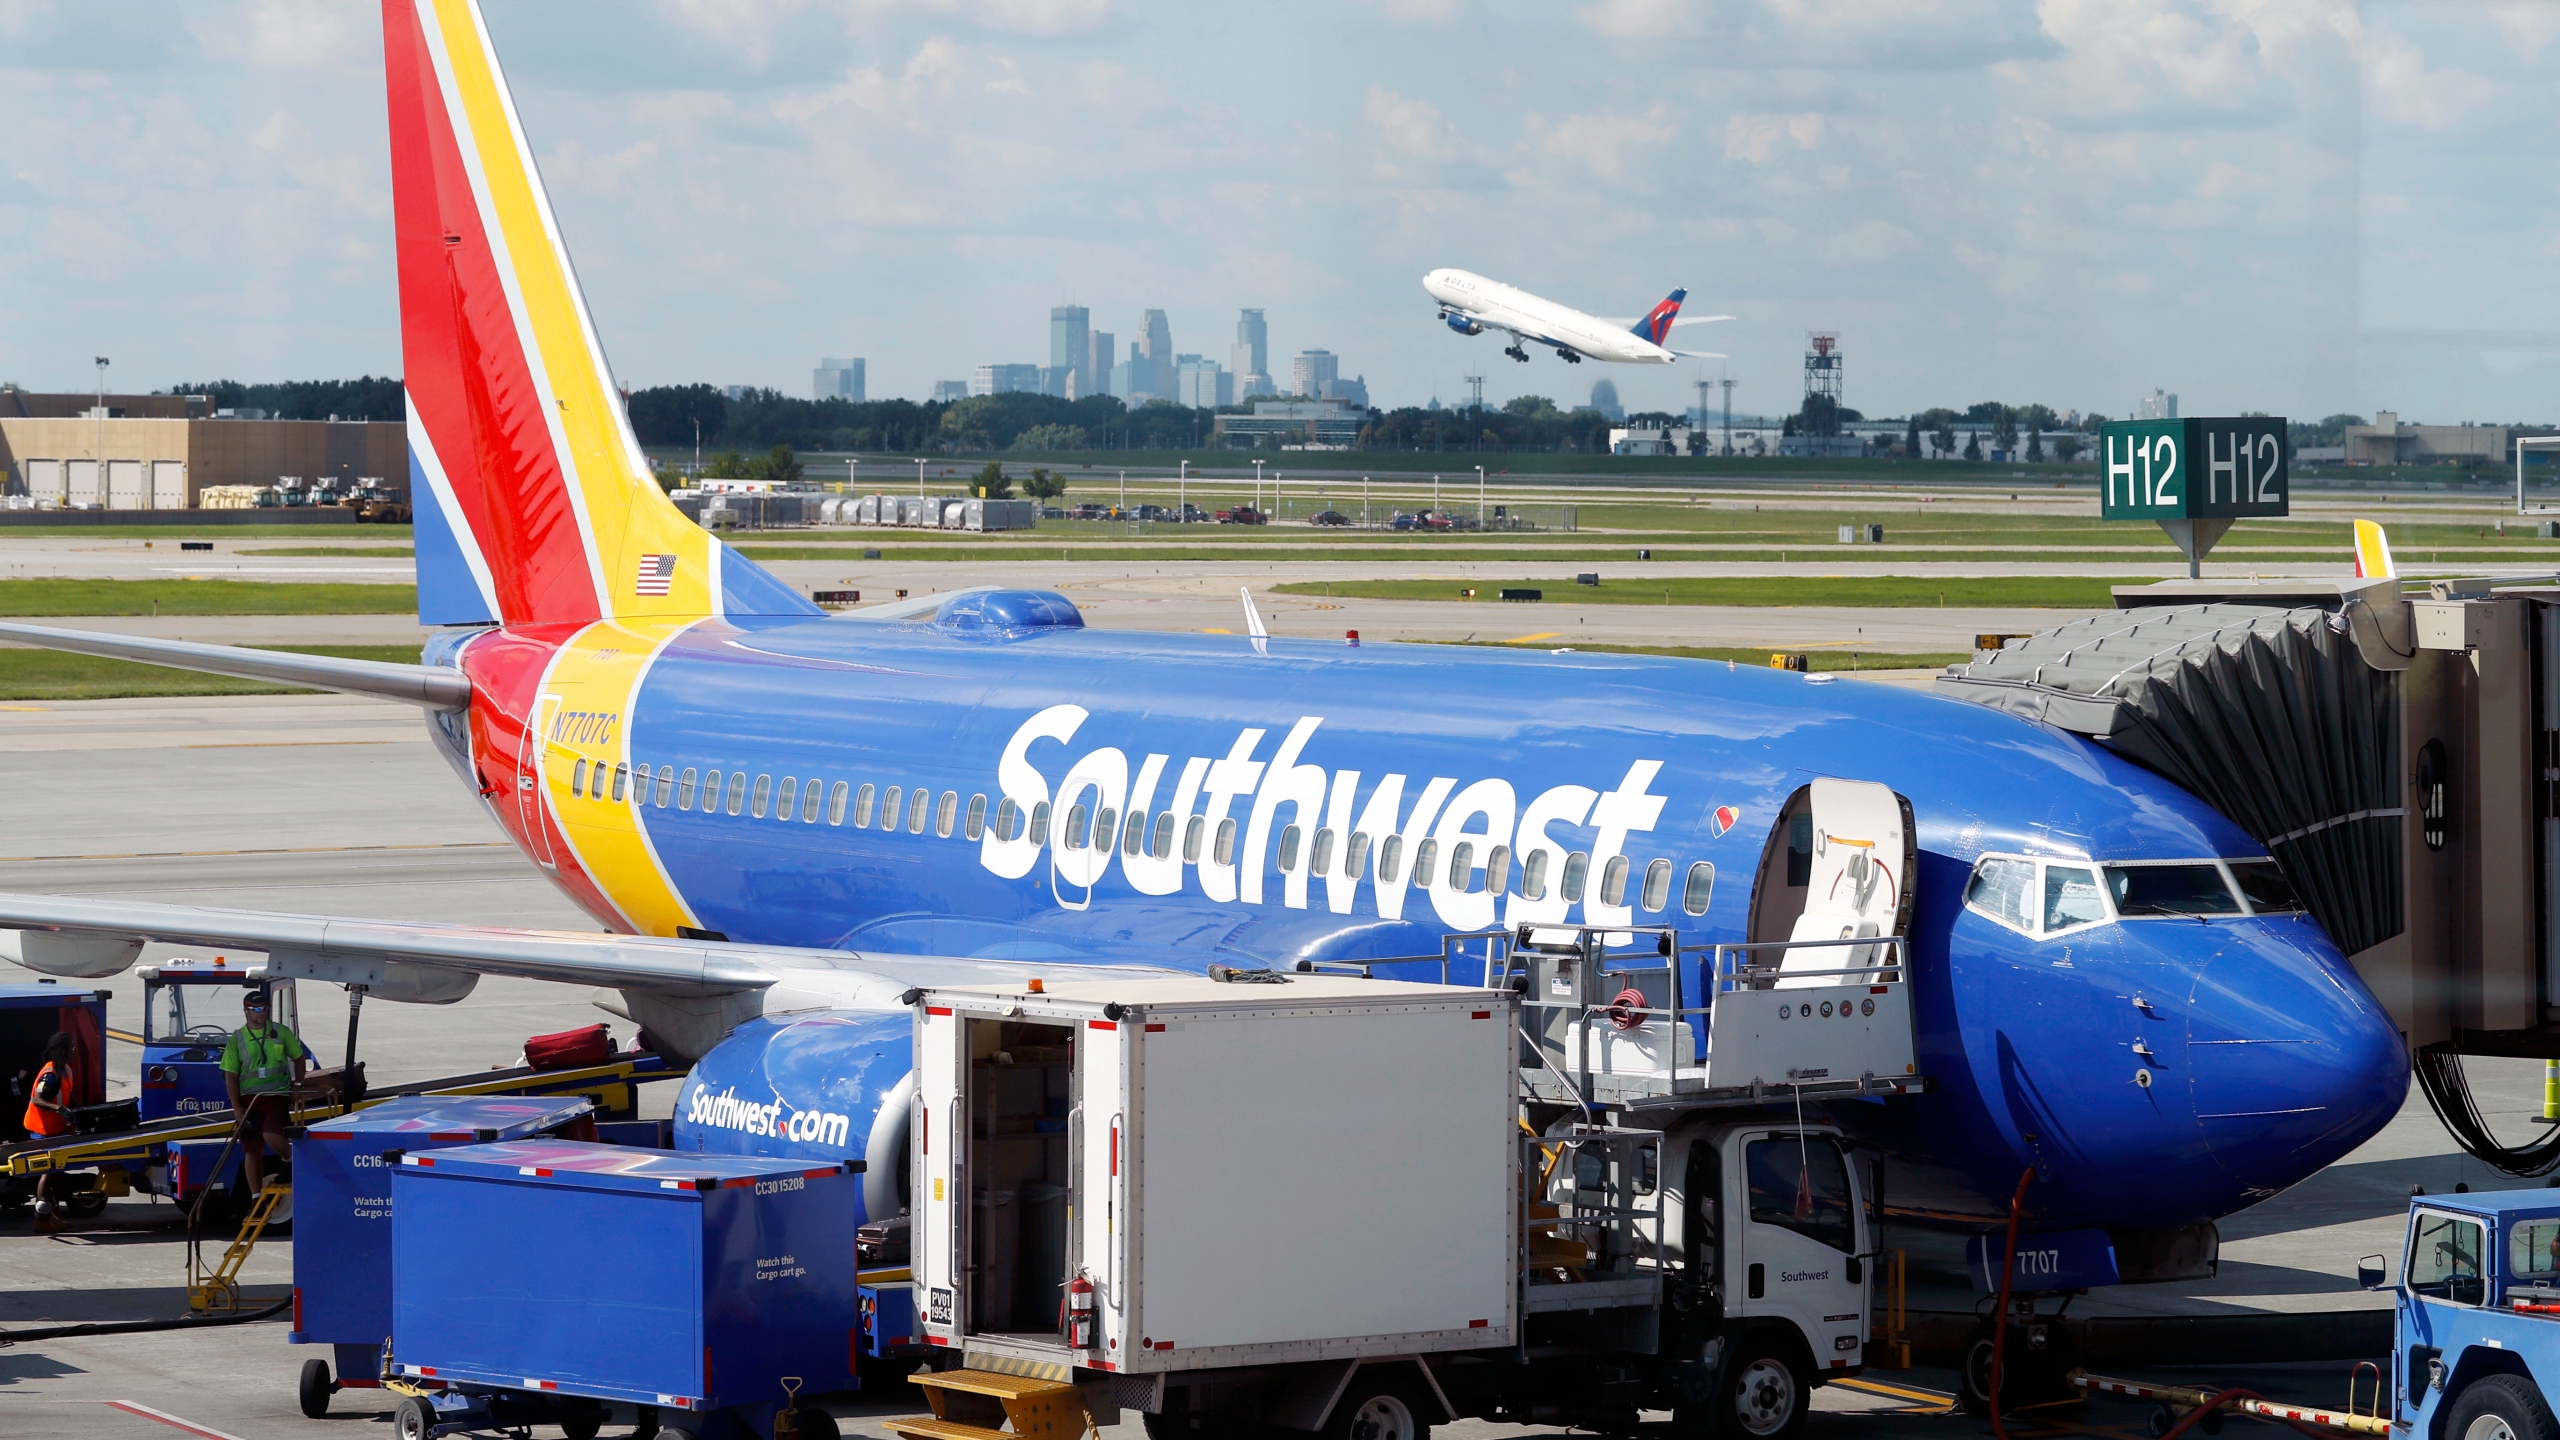 Earns Southwest Airlines_1551394583808